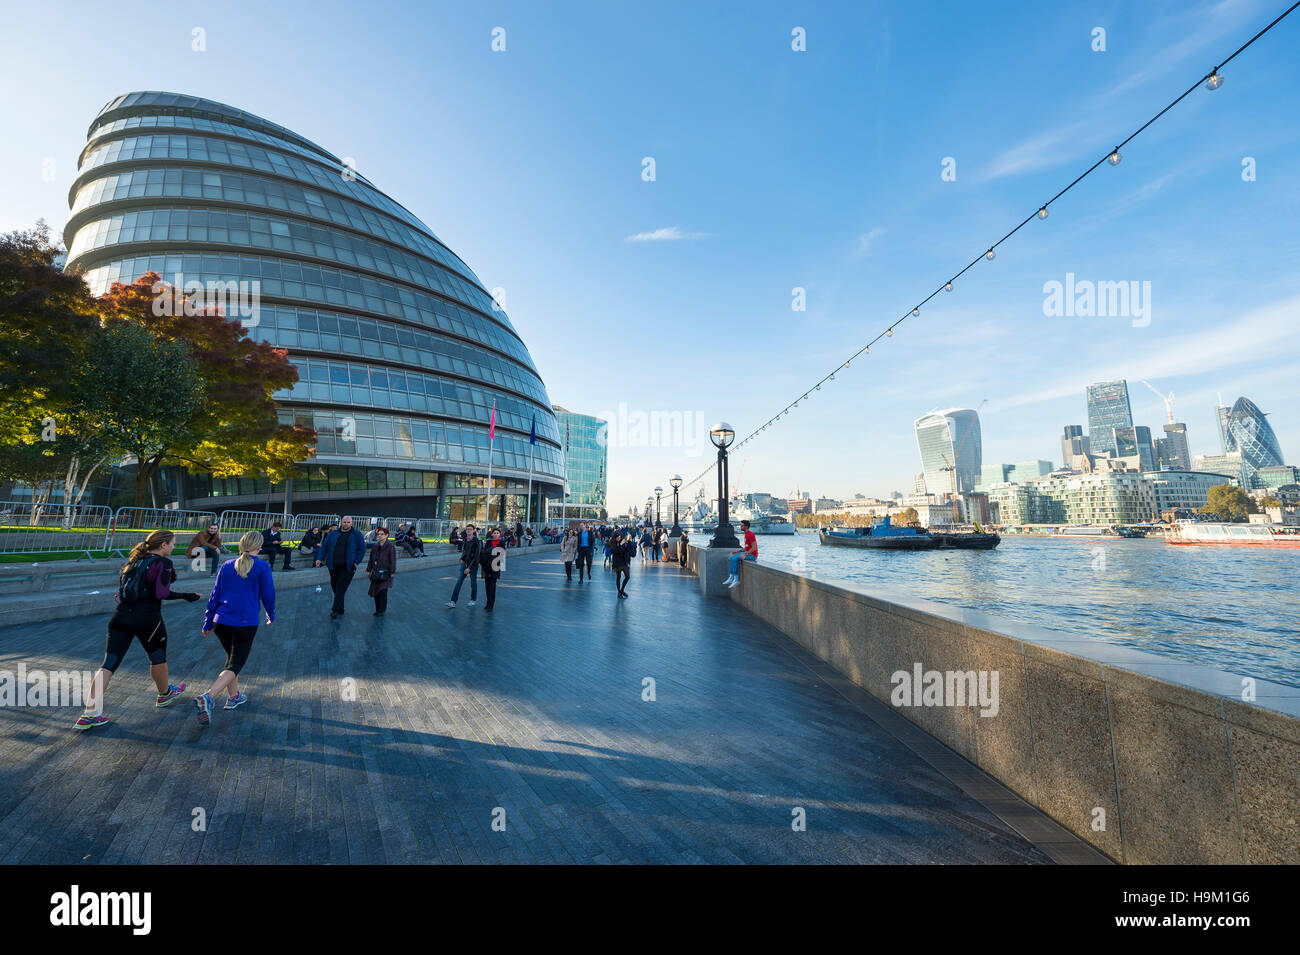 LONDON - OCTOBER 28, 2016: Visitors take advantage of mild autumn afternoon on the south bank of the Thames riverside. - Stock Image